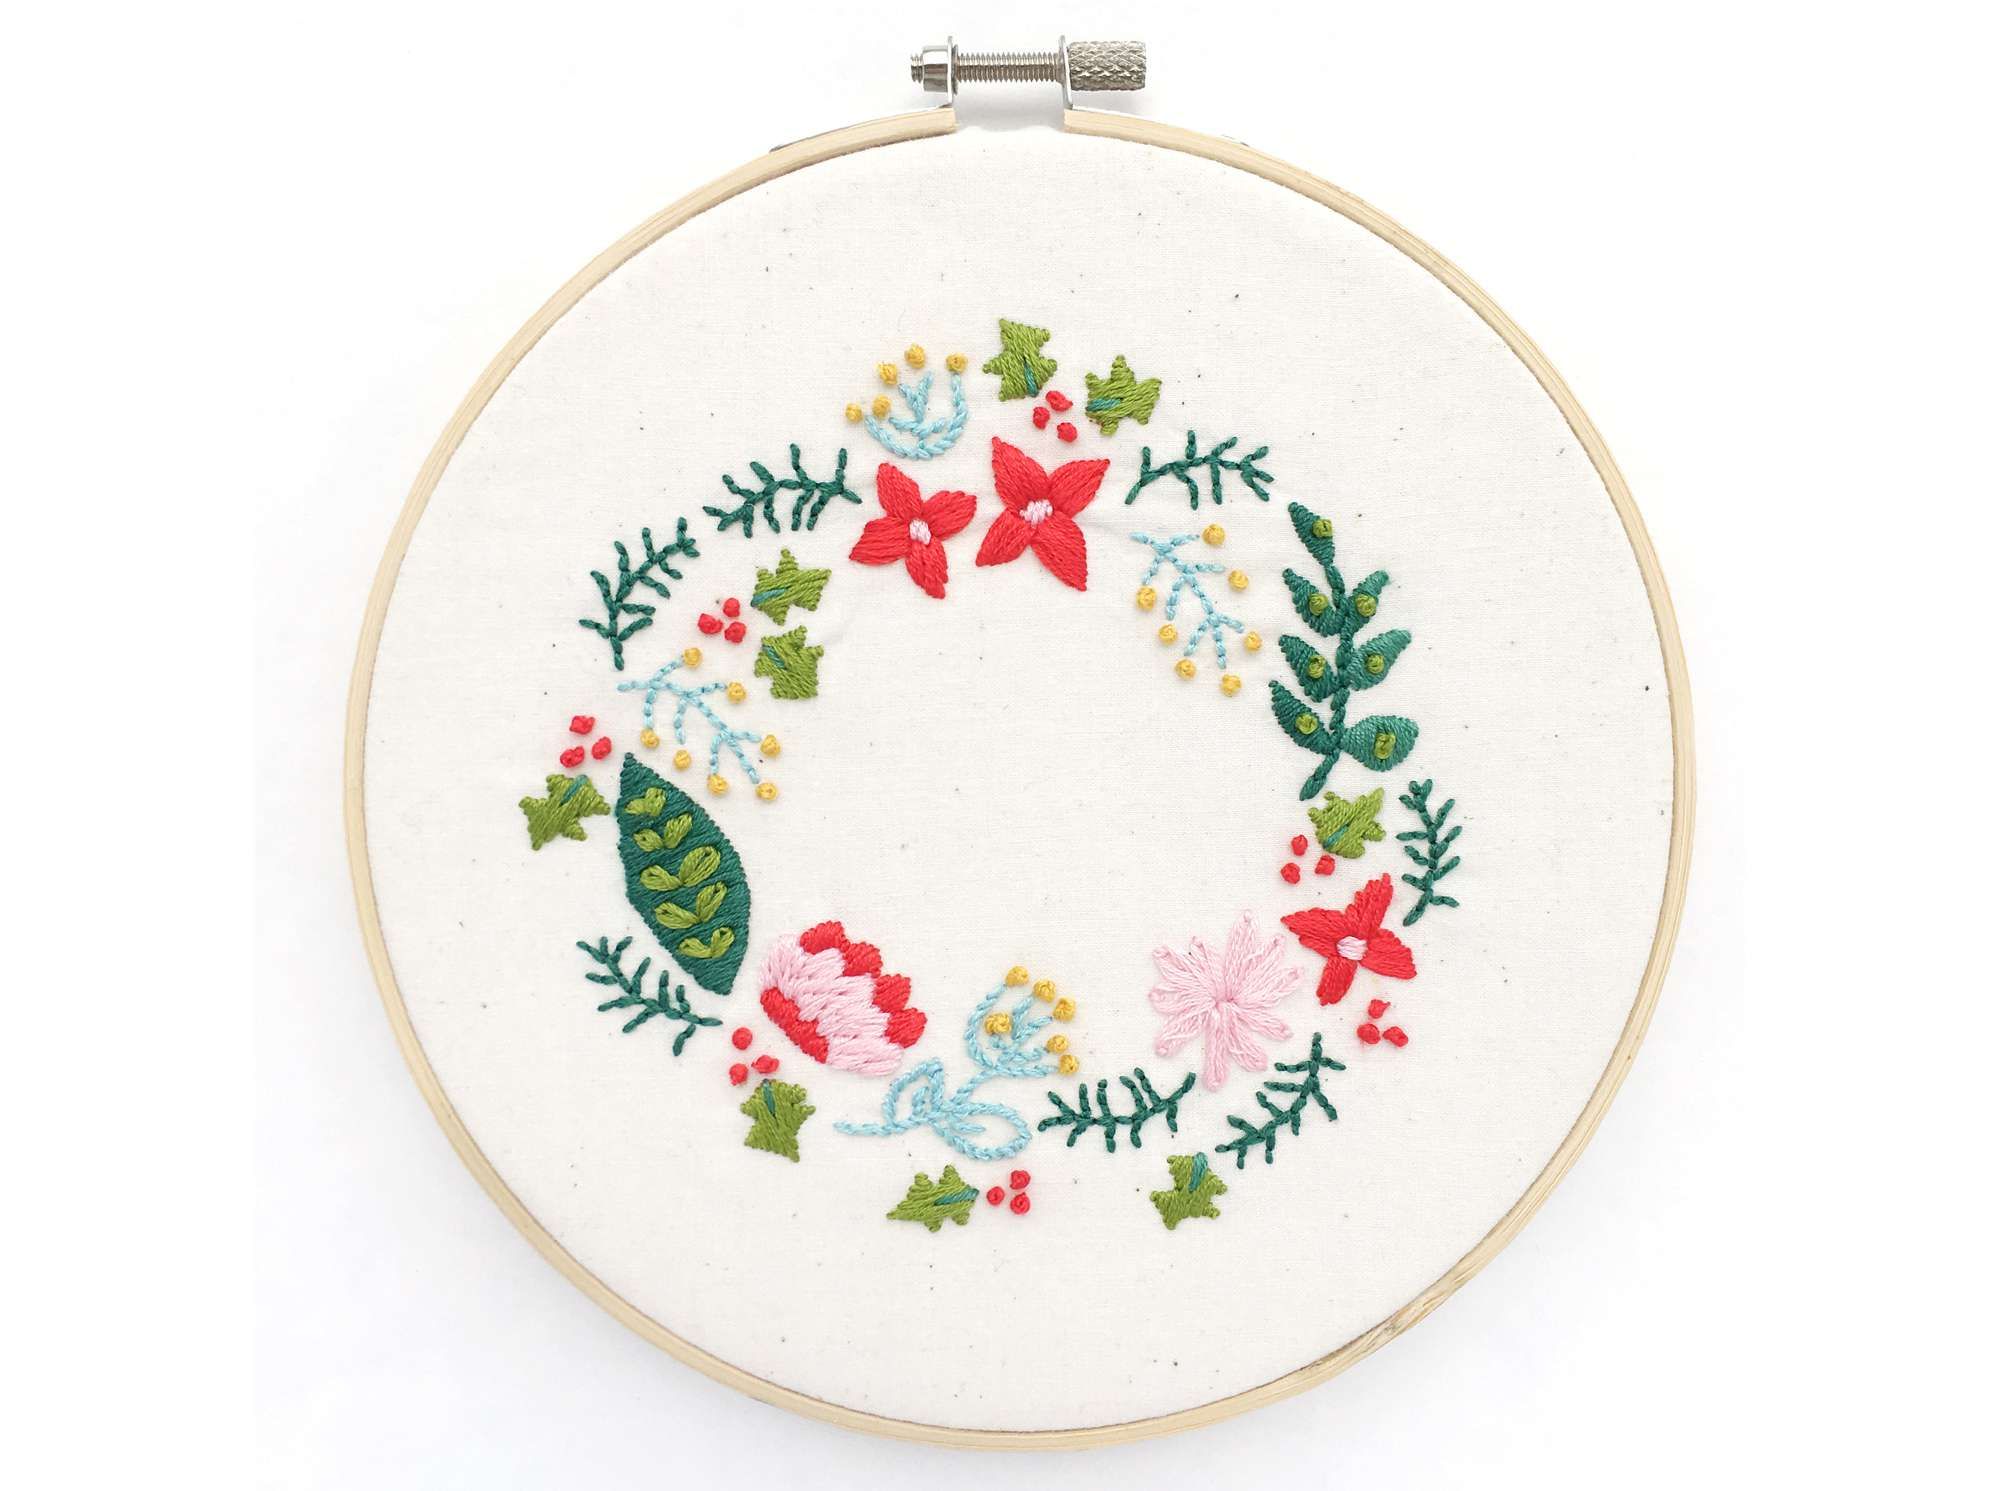 Free Flower Embroidery Patterns 10 Wreath Embroidery Patterns For Any Time Of Year